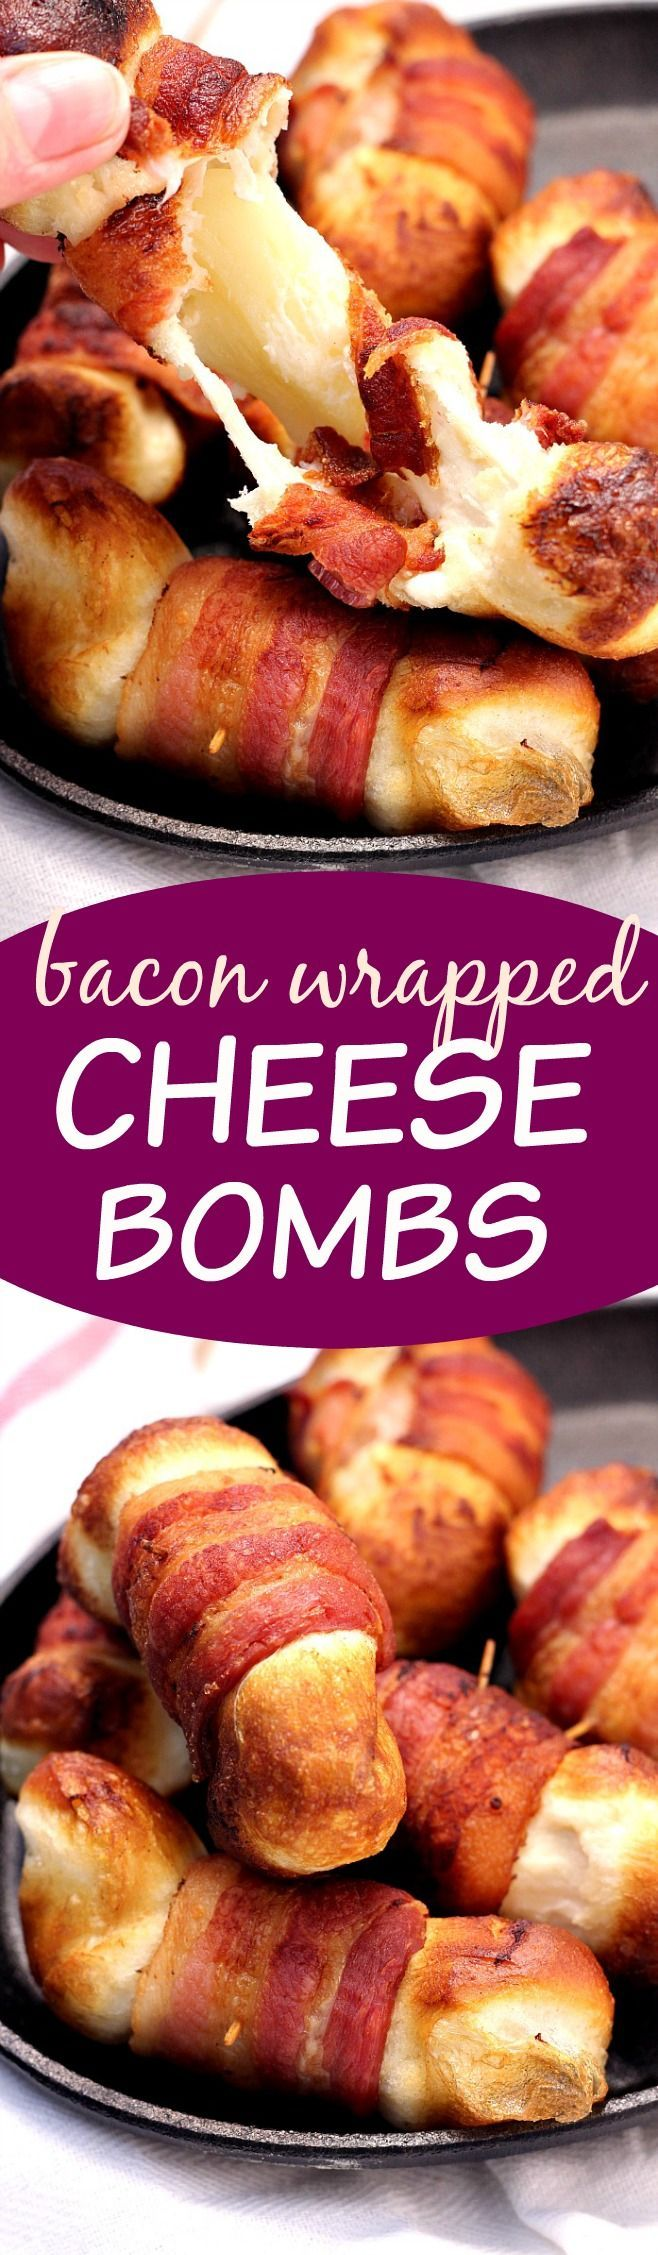 The appetizer that will make the party! Cheese filled biscuit bombs wrapped in bacon and fried. Do it!